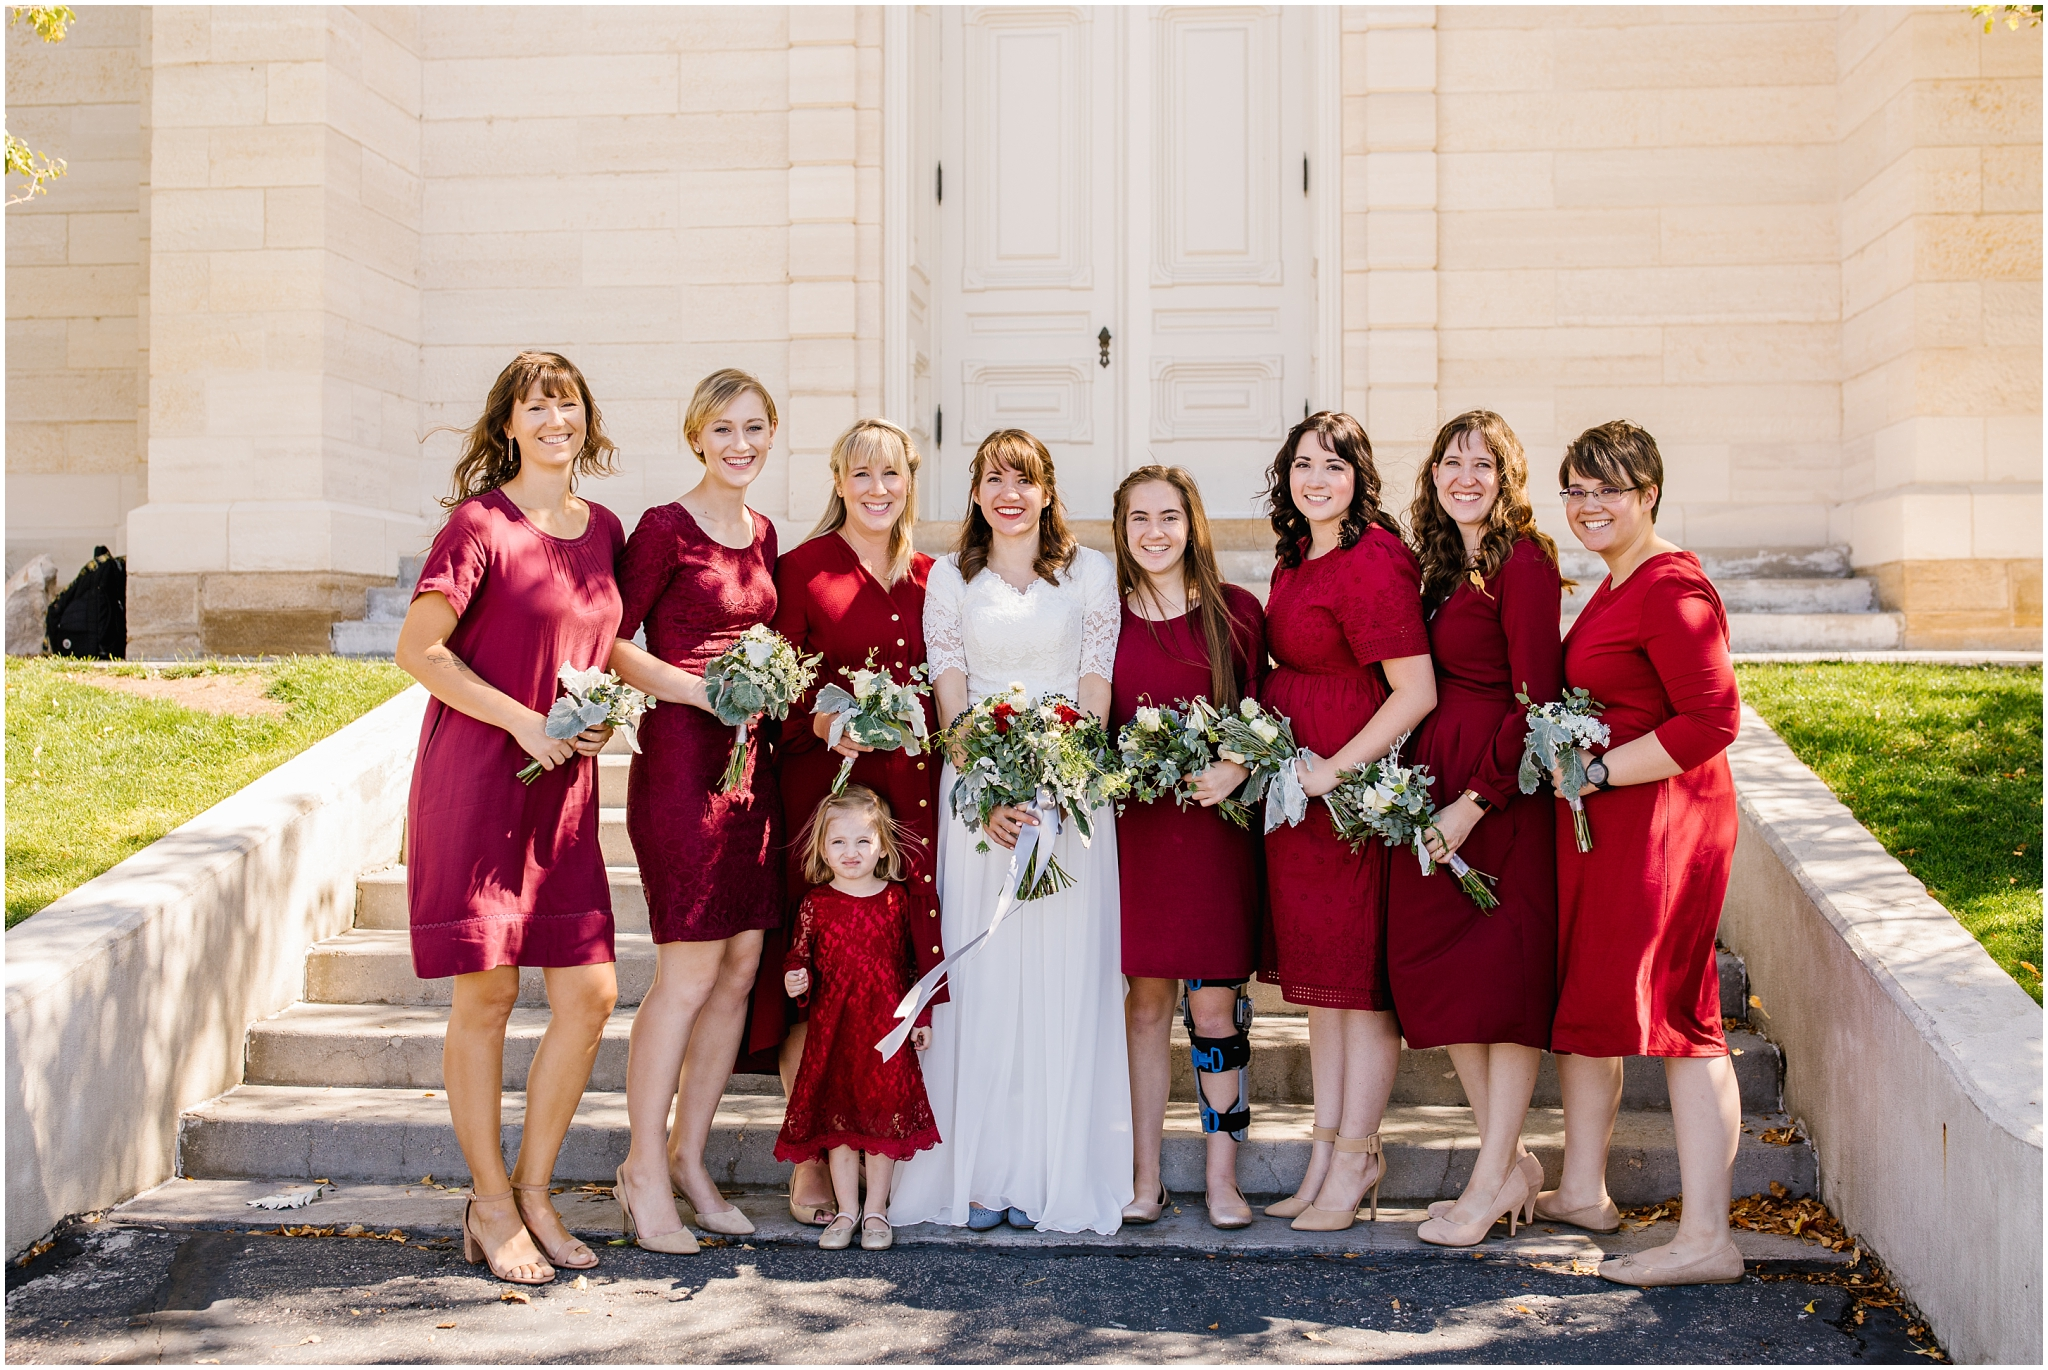 BrynneWinston-44_Lizzie-B-Imagery-Utah-Wedding-Photographer-Utah-County-Manti-Temple.jpg